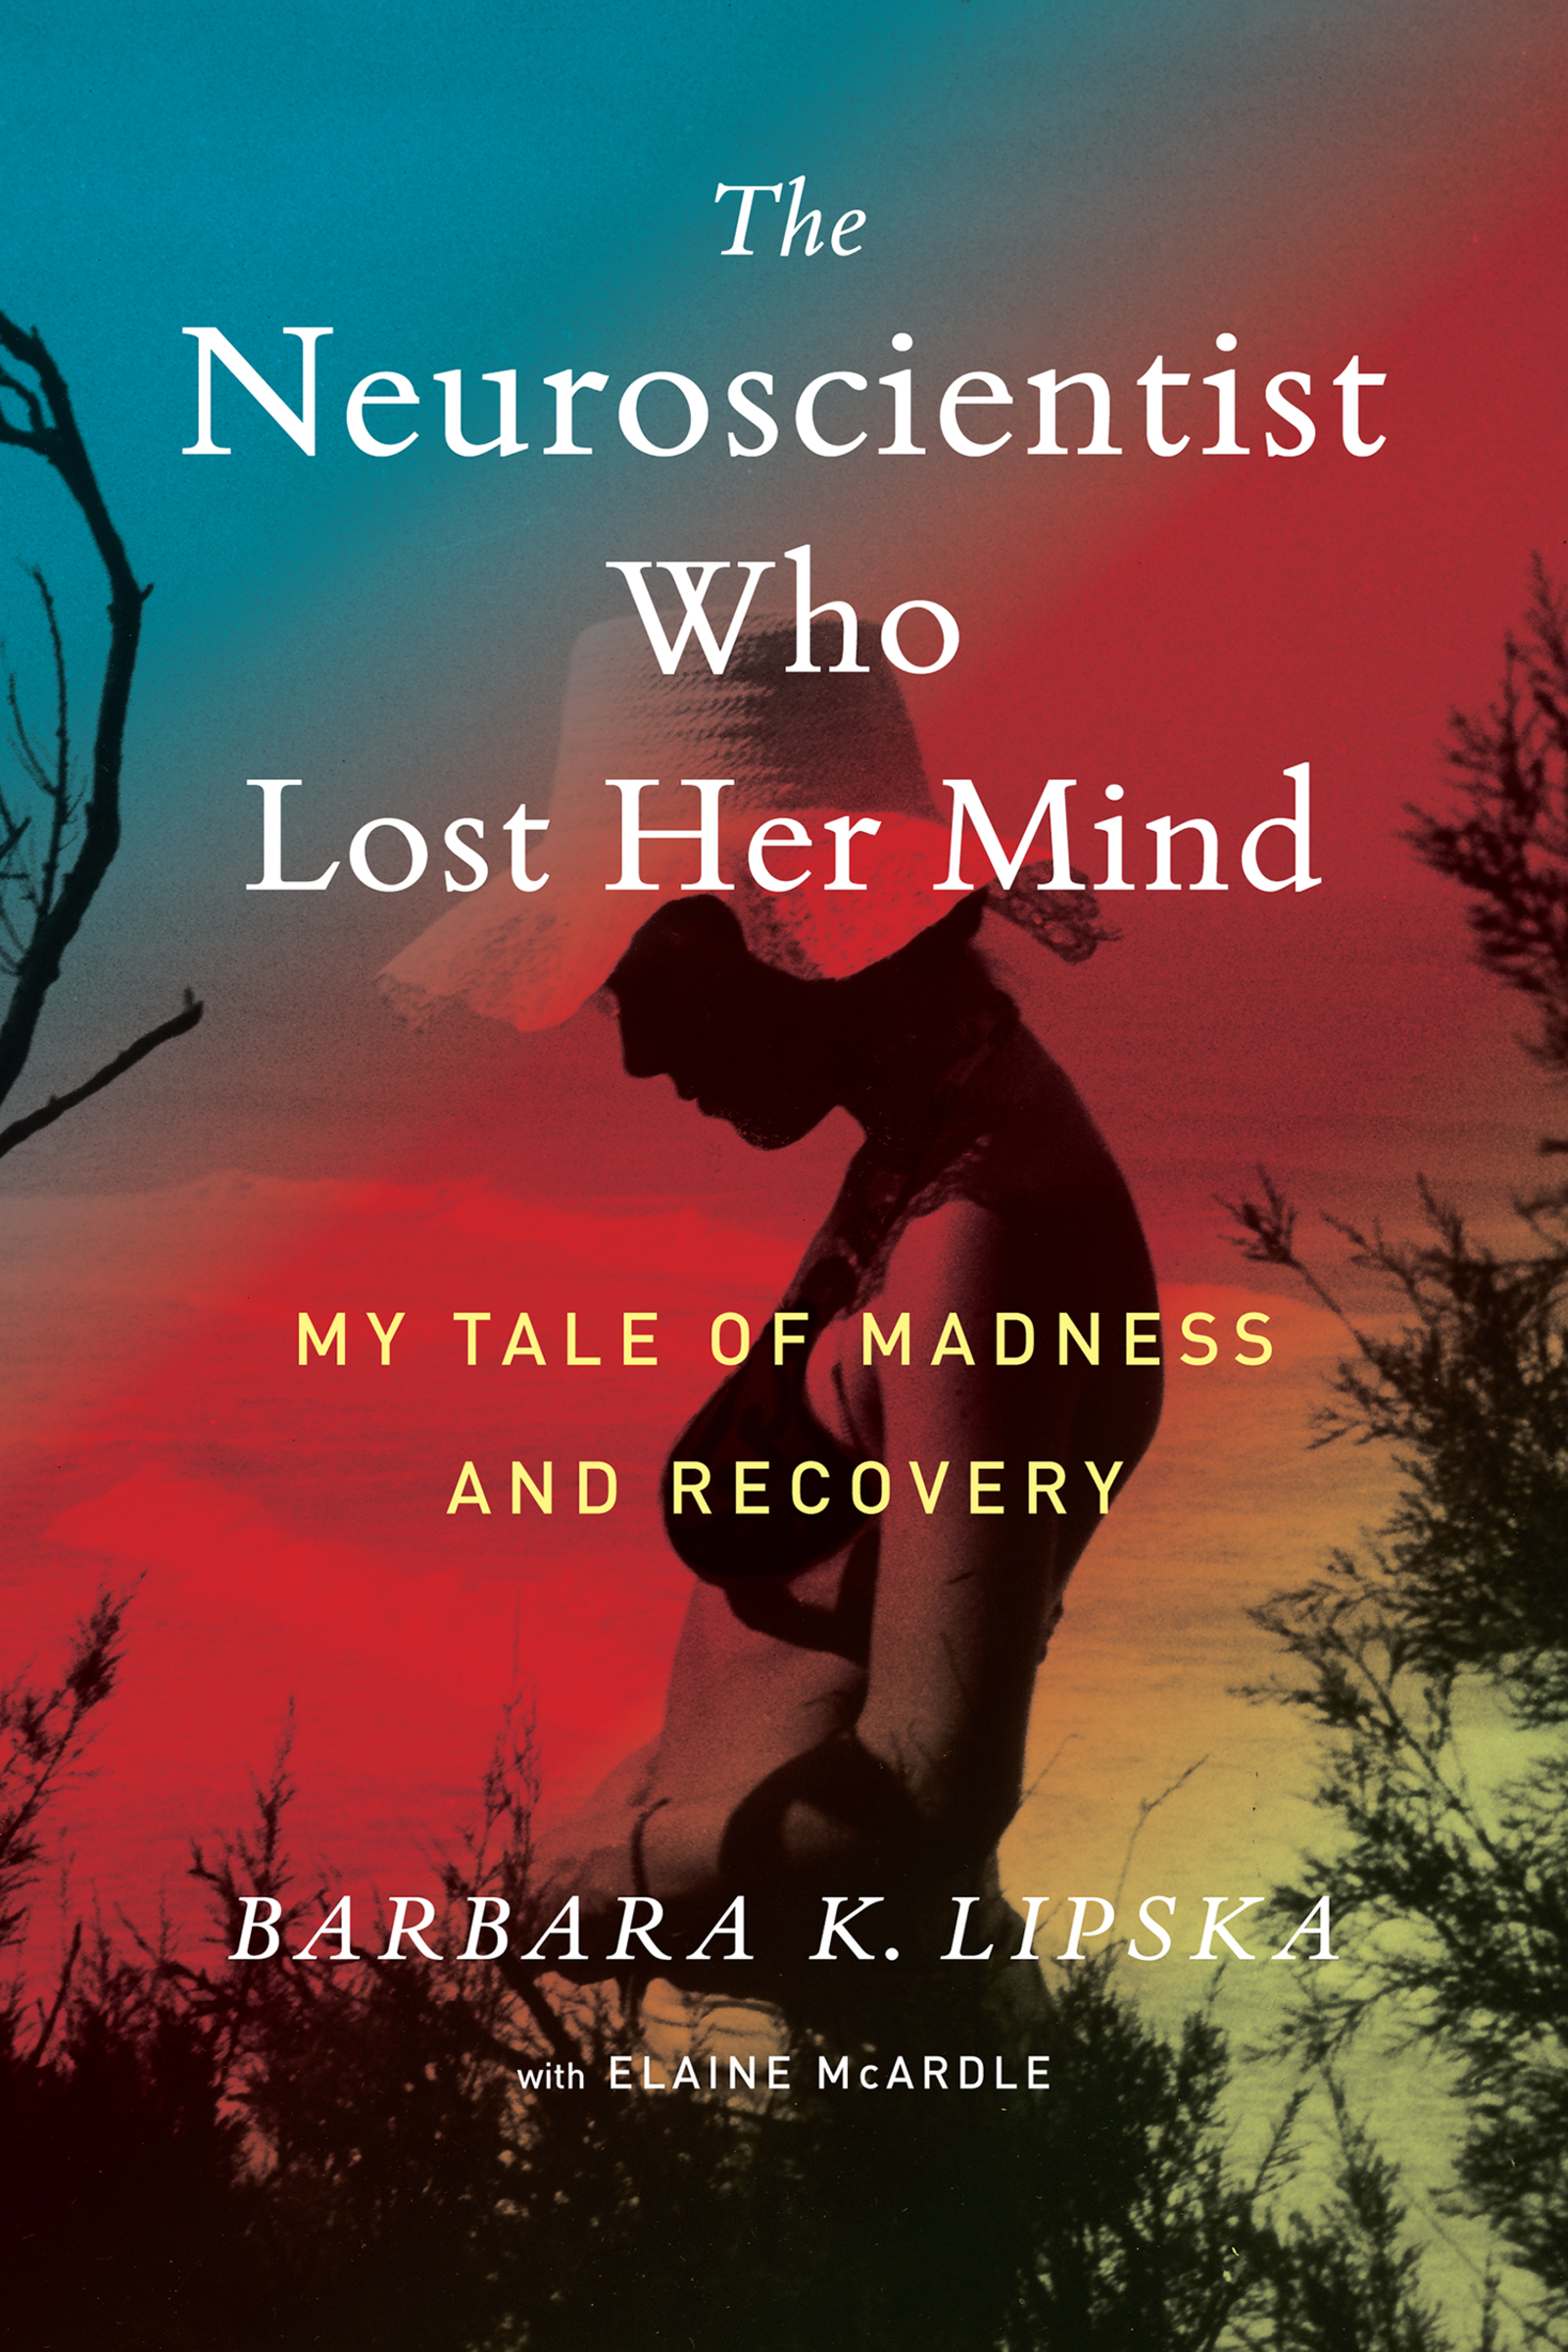 The neuroscientist who lost her mind my tale of madness and recovery